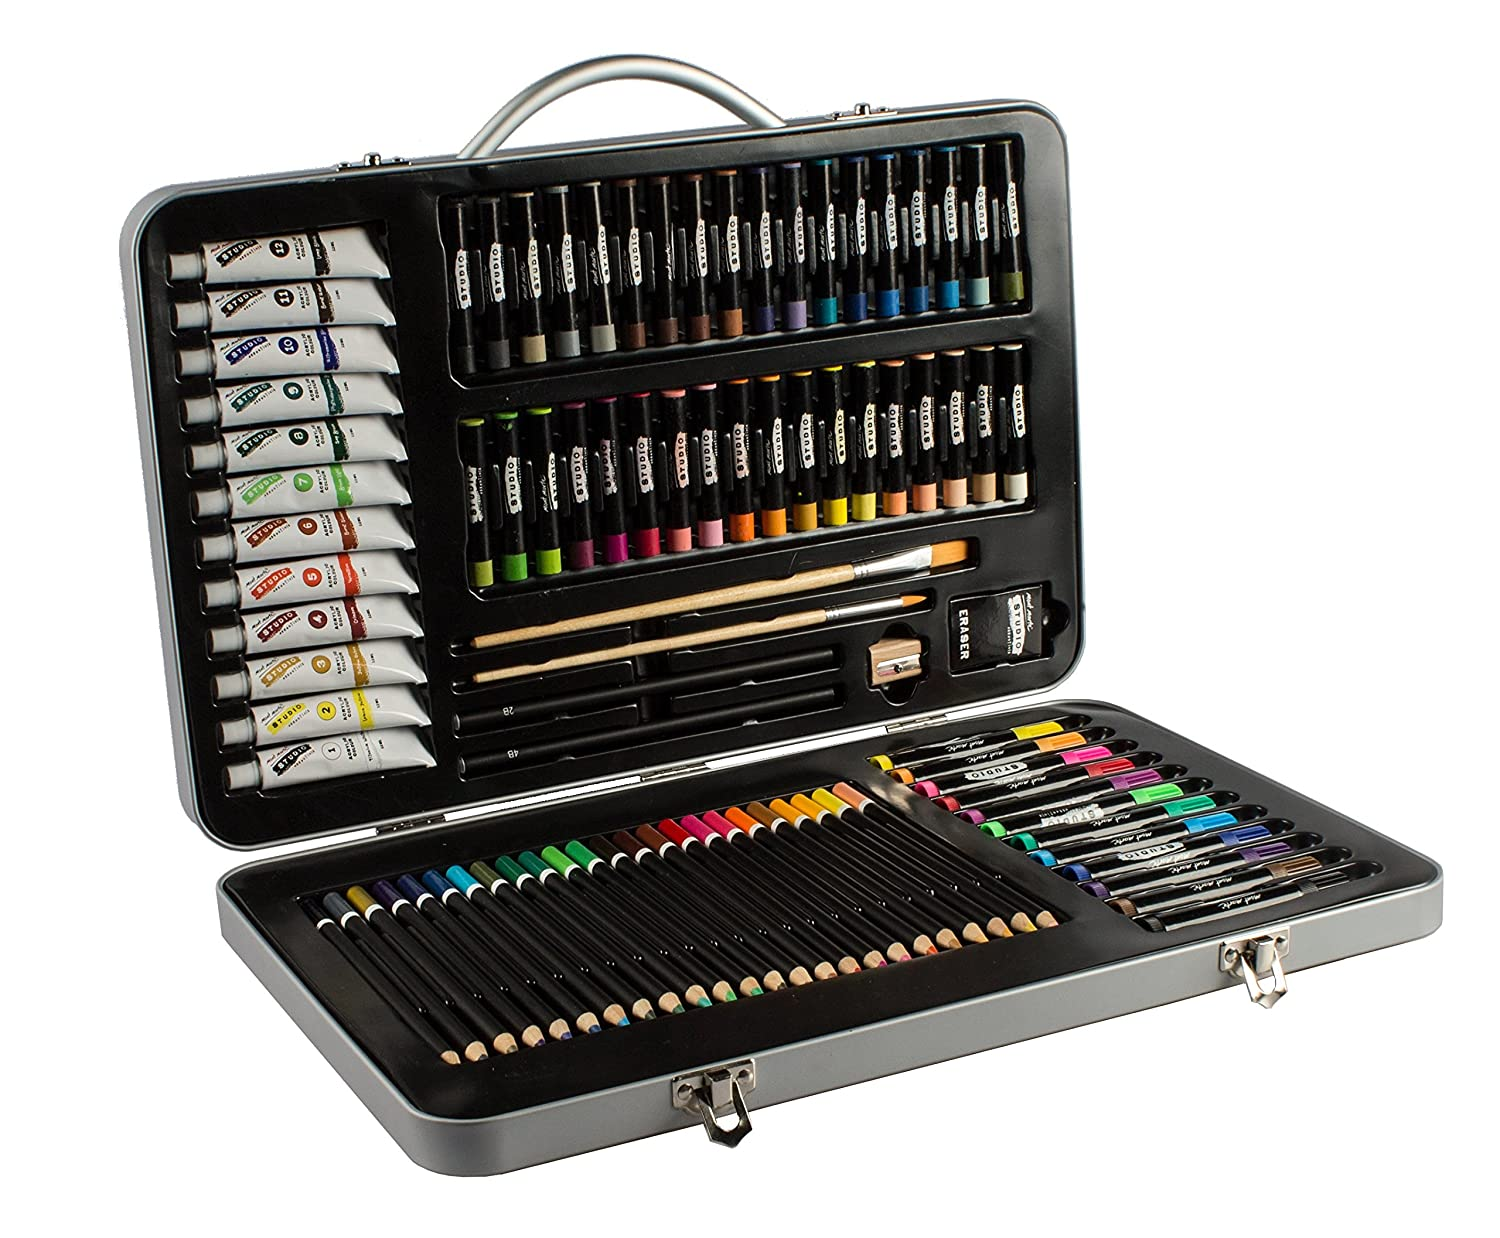 Mont Marte Premium Art Set - 90 Pieces - High Quality Painting and Drawing Set in Elegant Metal Case - Essential Mixed Media Set Ideal as Gift - Perfect for Kids, Beginners, Professionals and Artists MMGS0013